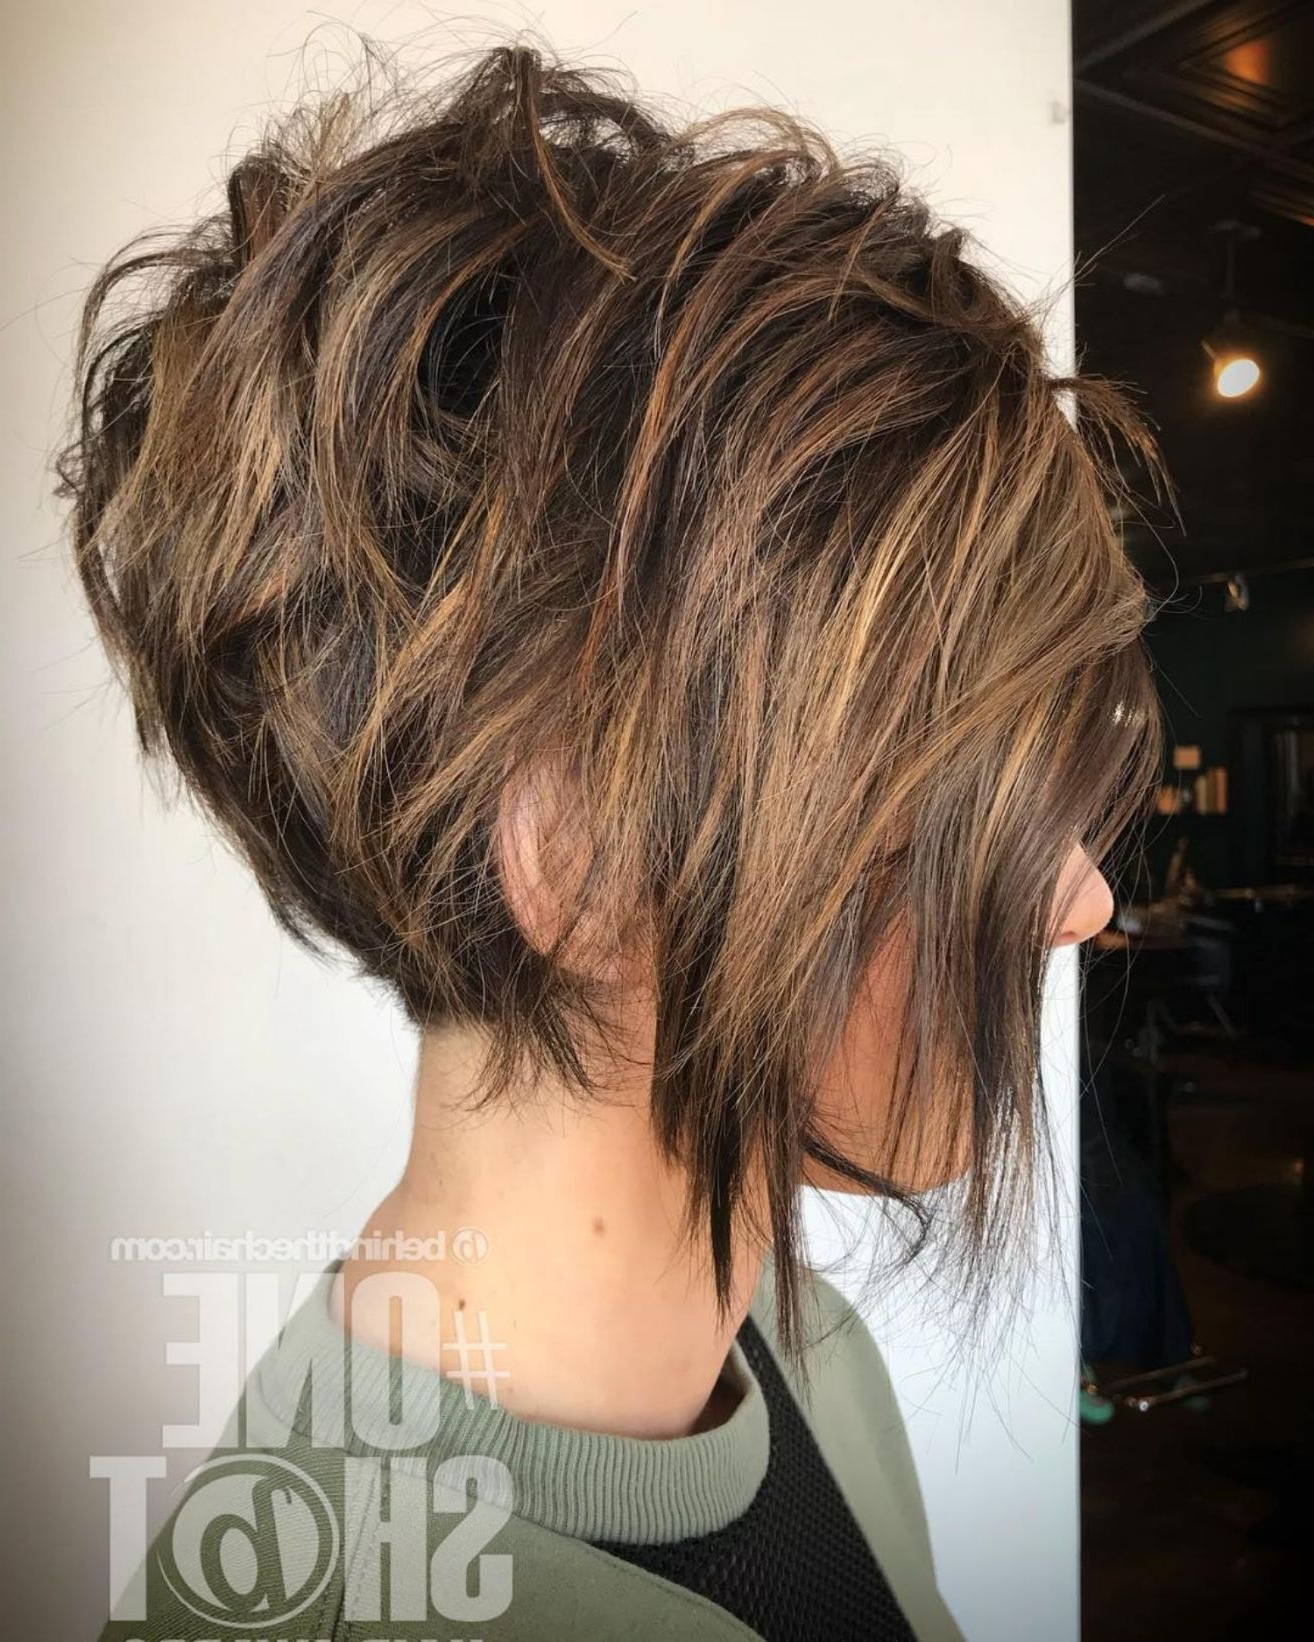 60 Short Shag Hairstyles That You Simply Can't Miss In 2018 | My Inside Messy Pixie Hairstyles With Chunky Highlights (View 11 of 20)